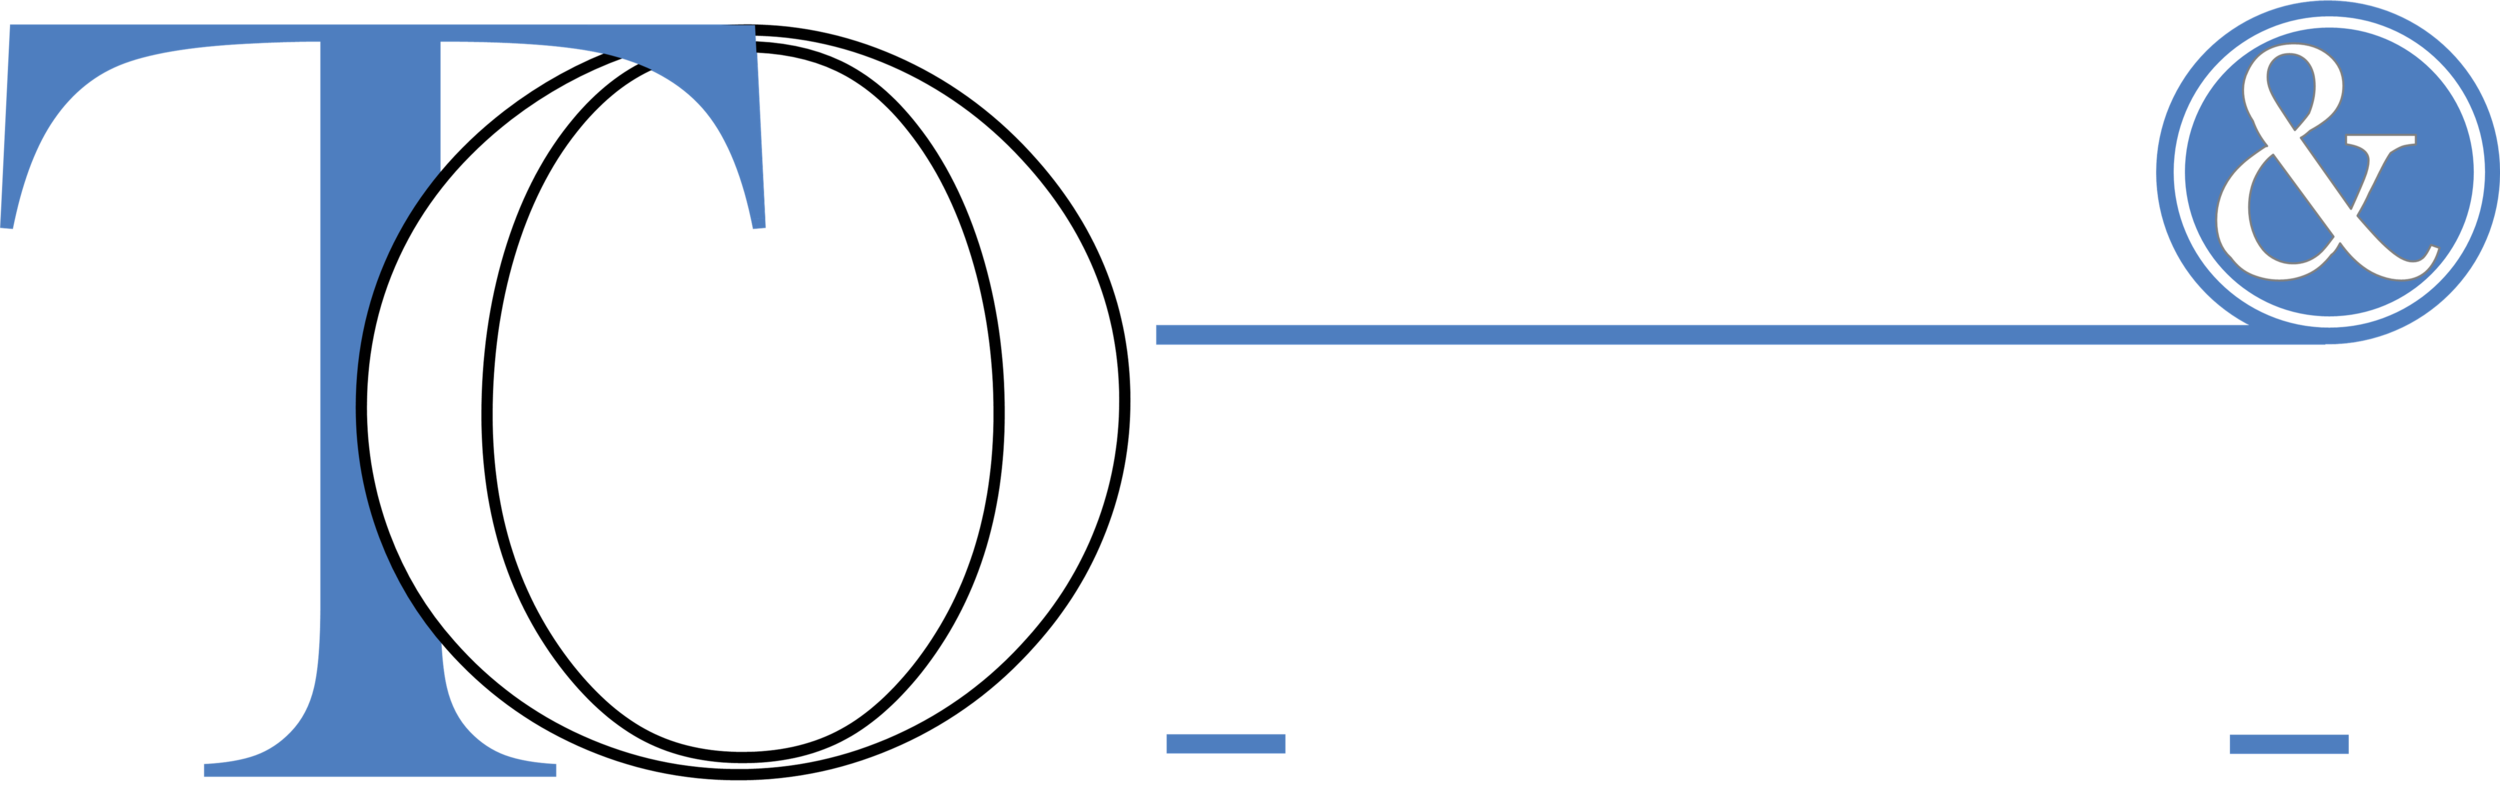 T&O Logo2 (clear&white).png